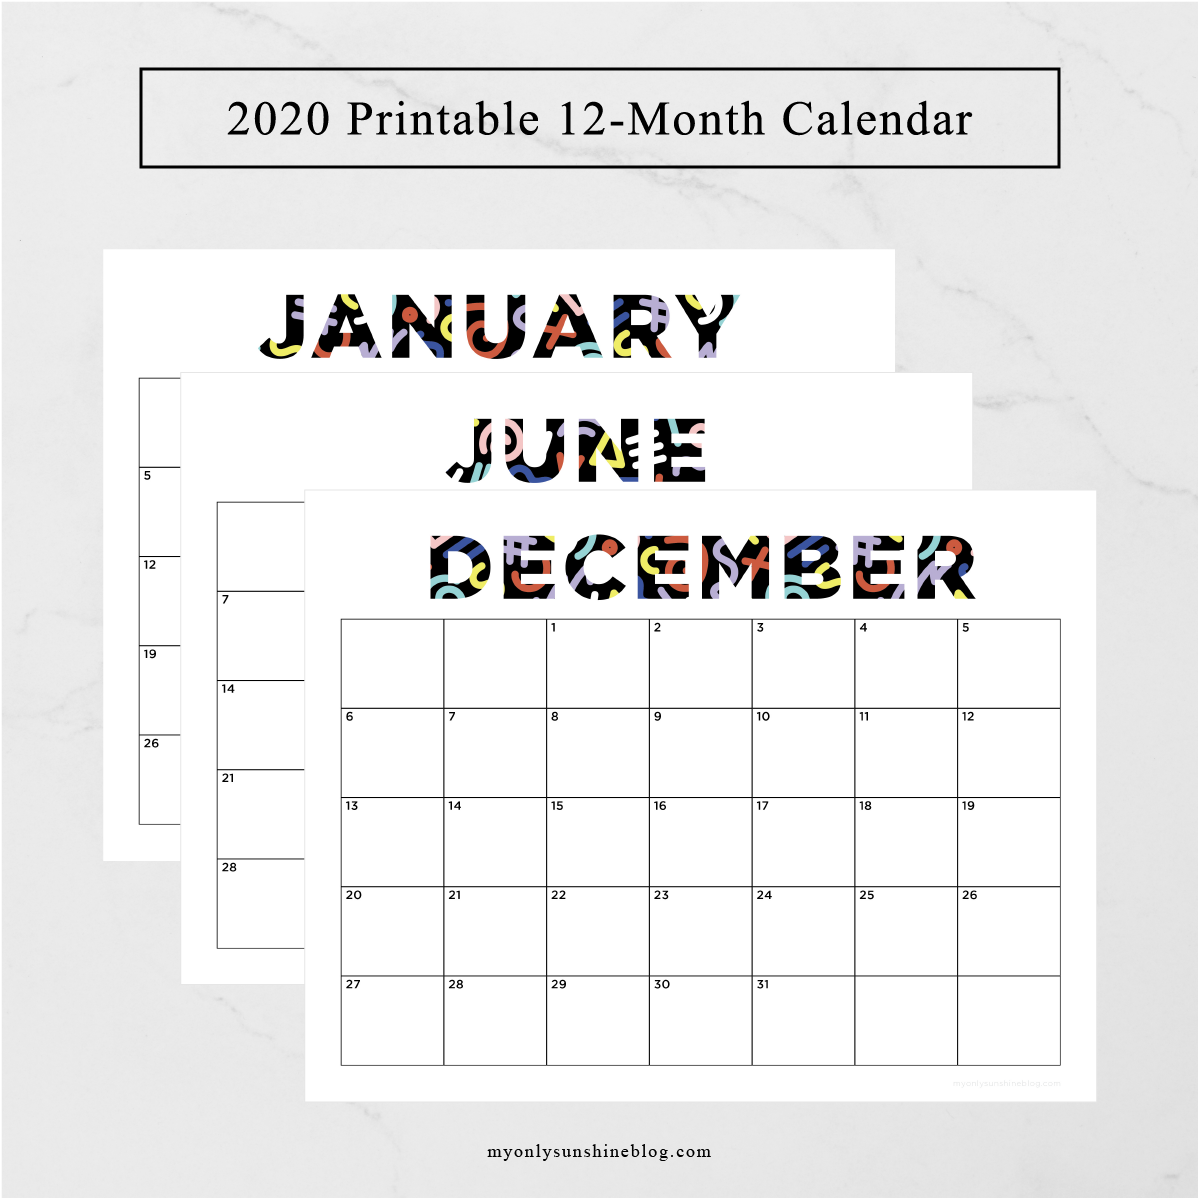 2020 Printable 12-Month Calendar | My Only Sunshine Blog